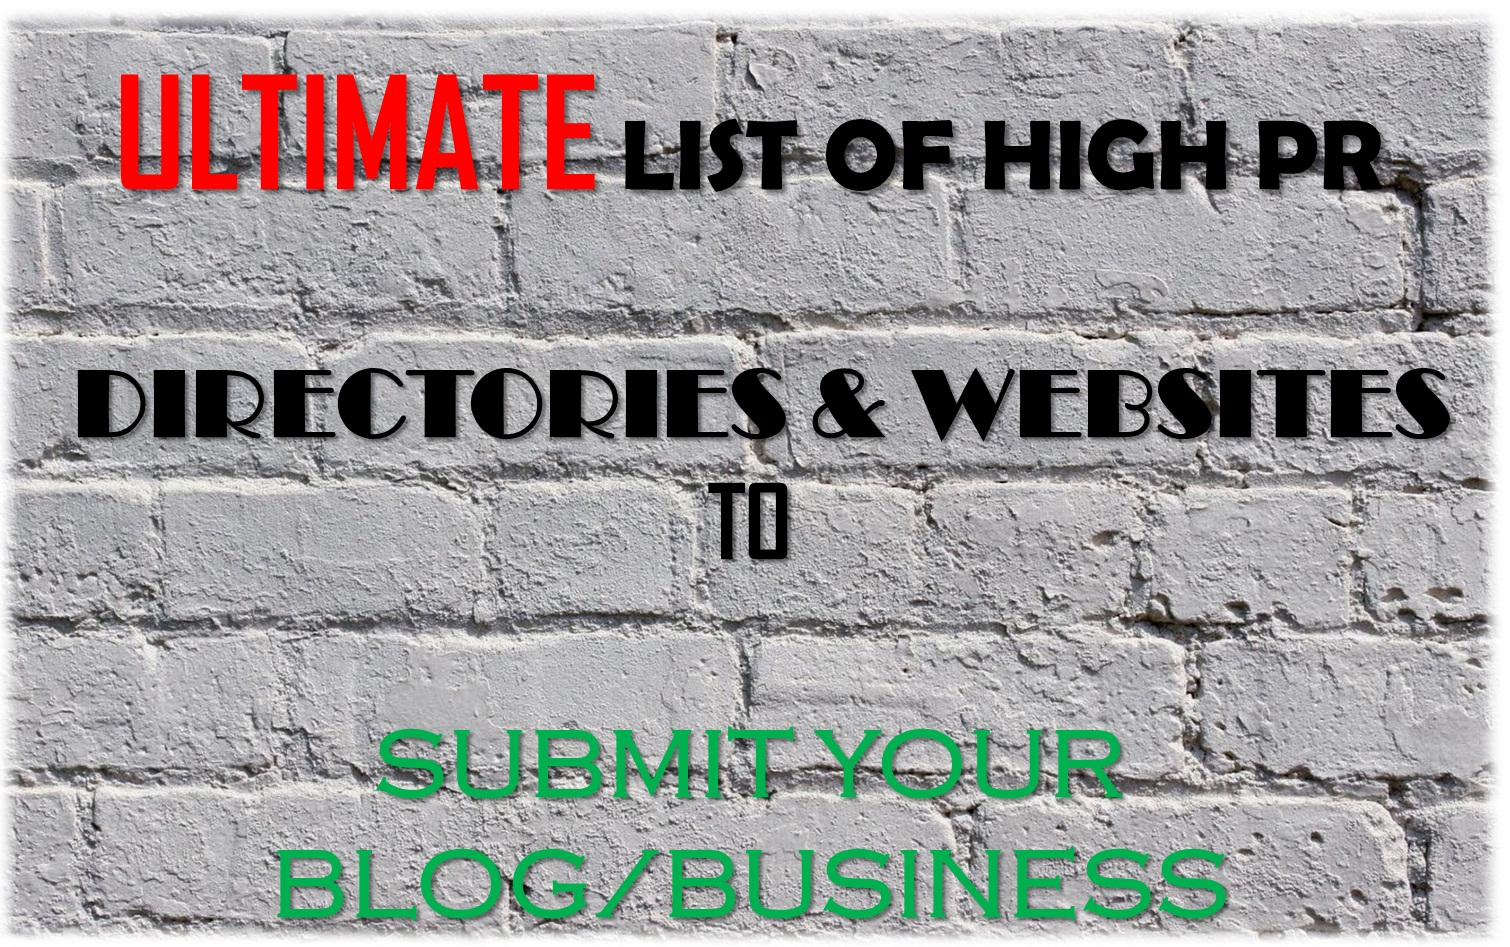 High PR Directories & Websites, List Of High PR Directories & Websites, Free list of directory, SEO listing directory, SEO listing, Page listing, Verified High PR Directories & Websites, Do follow directory sites, directory submission list, directory submission list for seo, directory submission sites, free web directory submission list, free directory list, directory submission pagerank, instant approval directory submission list, directory submission site list, directory submission list 2015